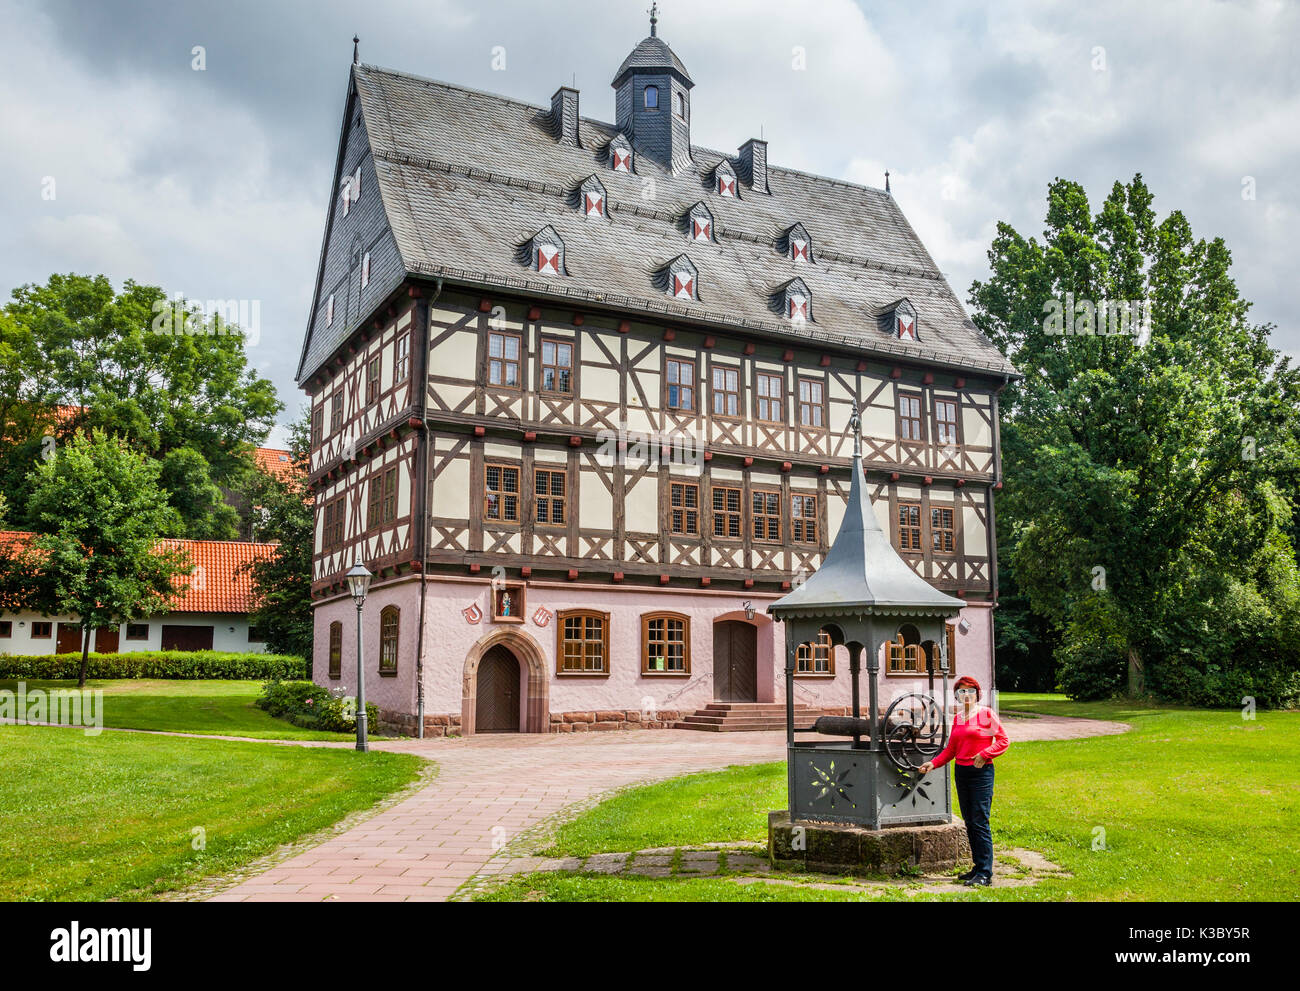 Germany, Lower Saxony, Gieboldehausen, medieval half-timbered patrician 'Haus auf dem Wall' (house on the bank) - Stock Image